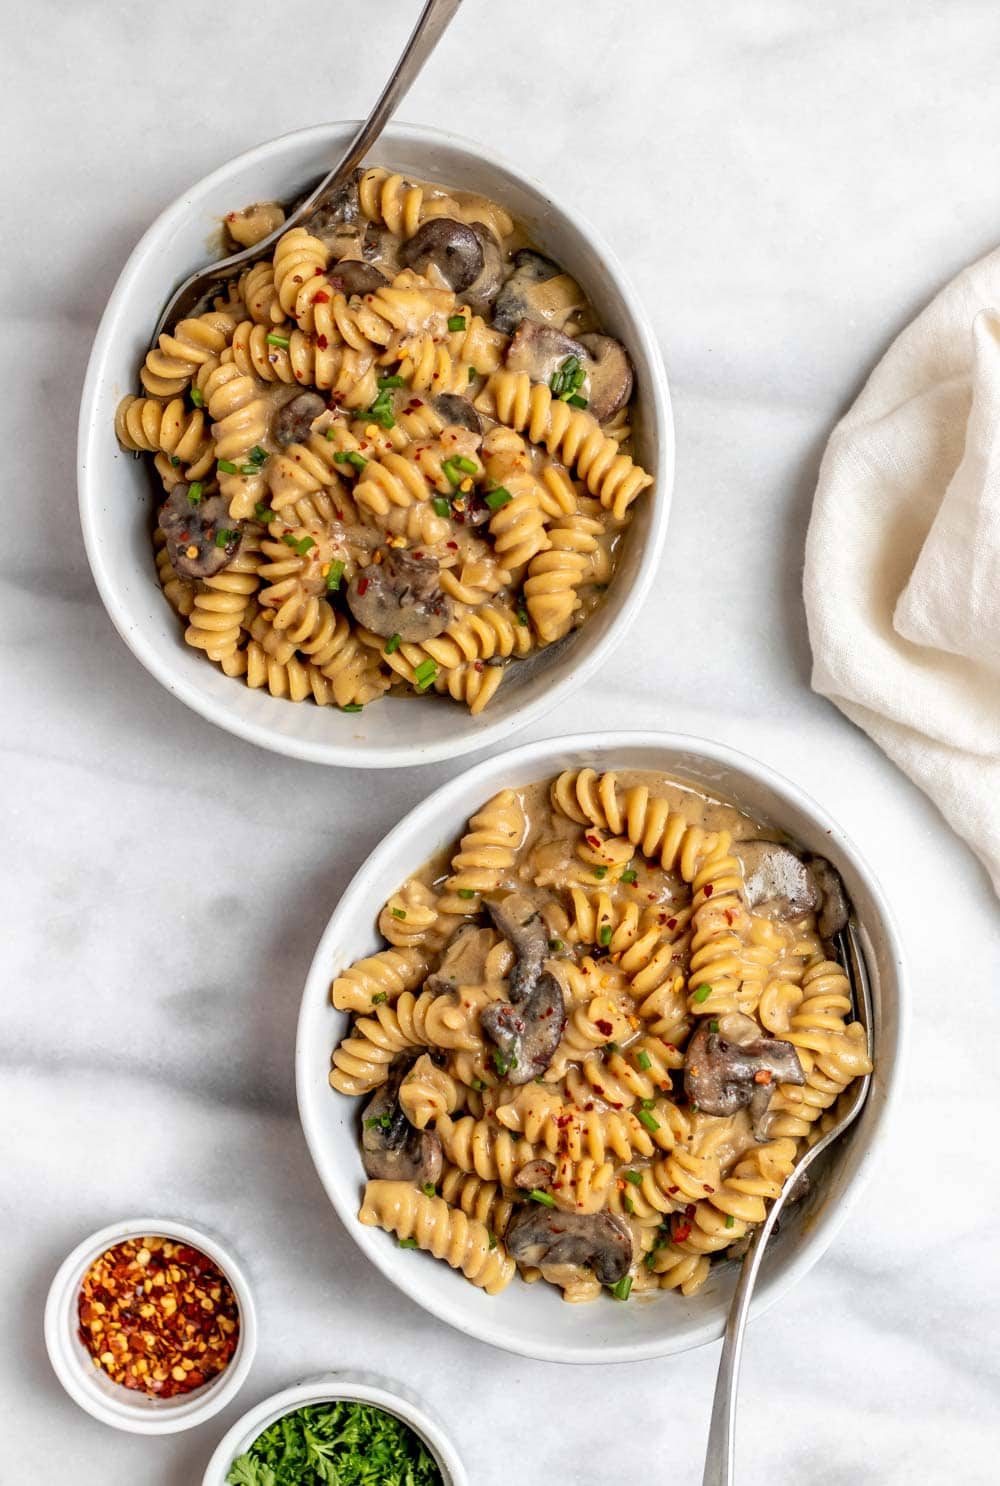 Two bowls with mushroom pasta and chives on top.